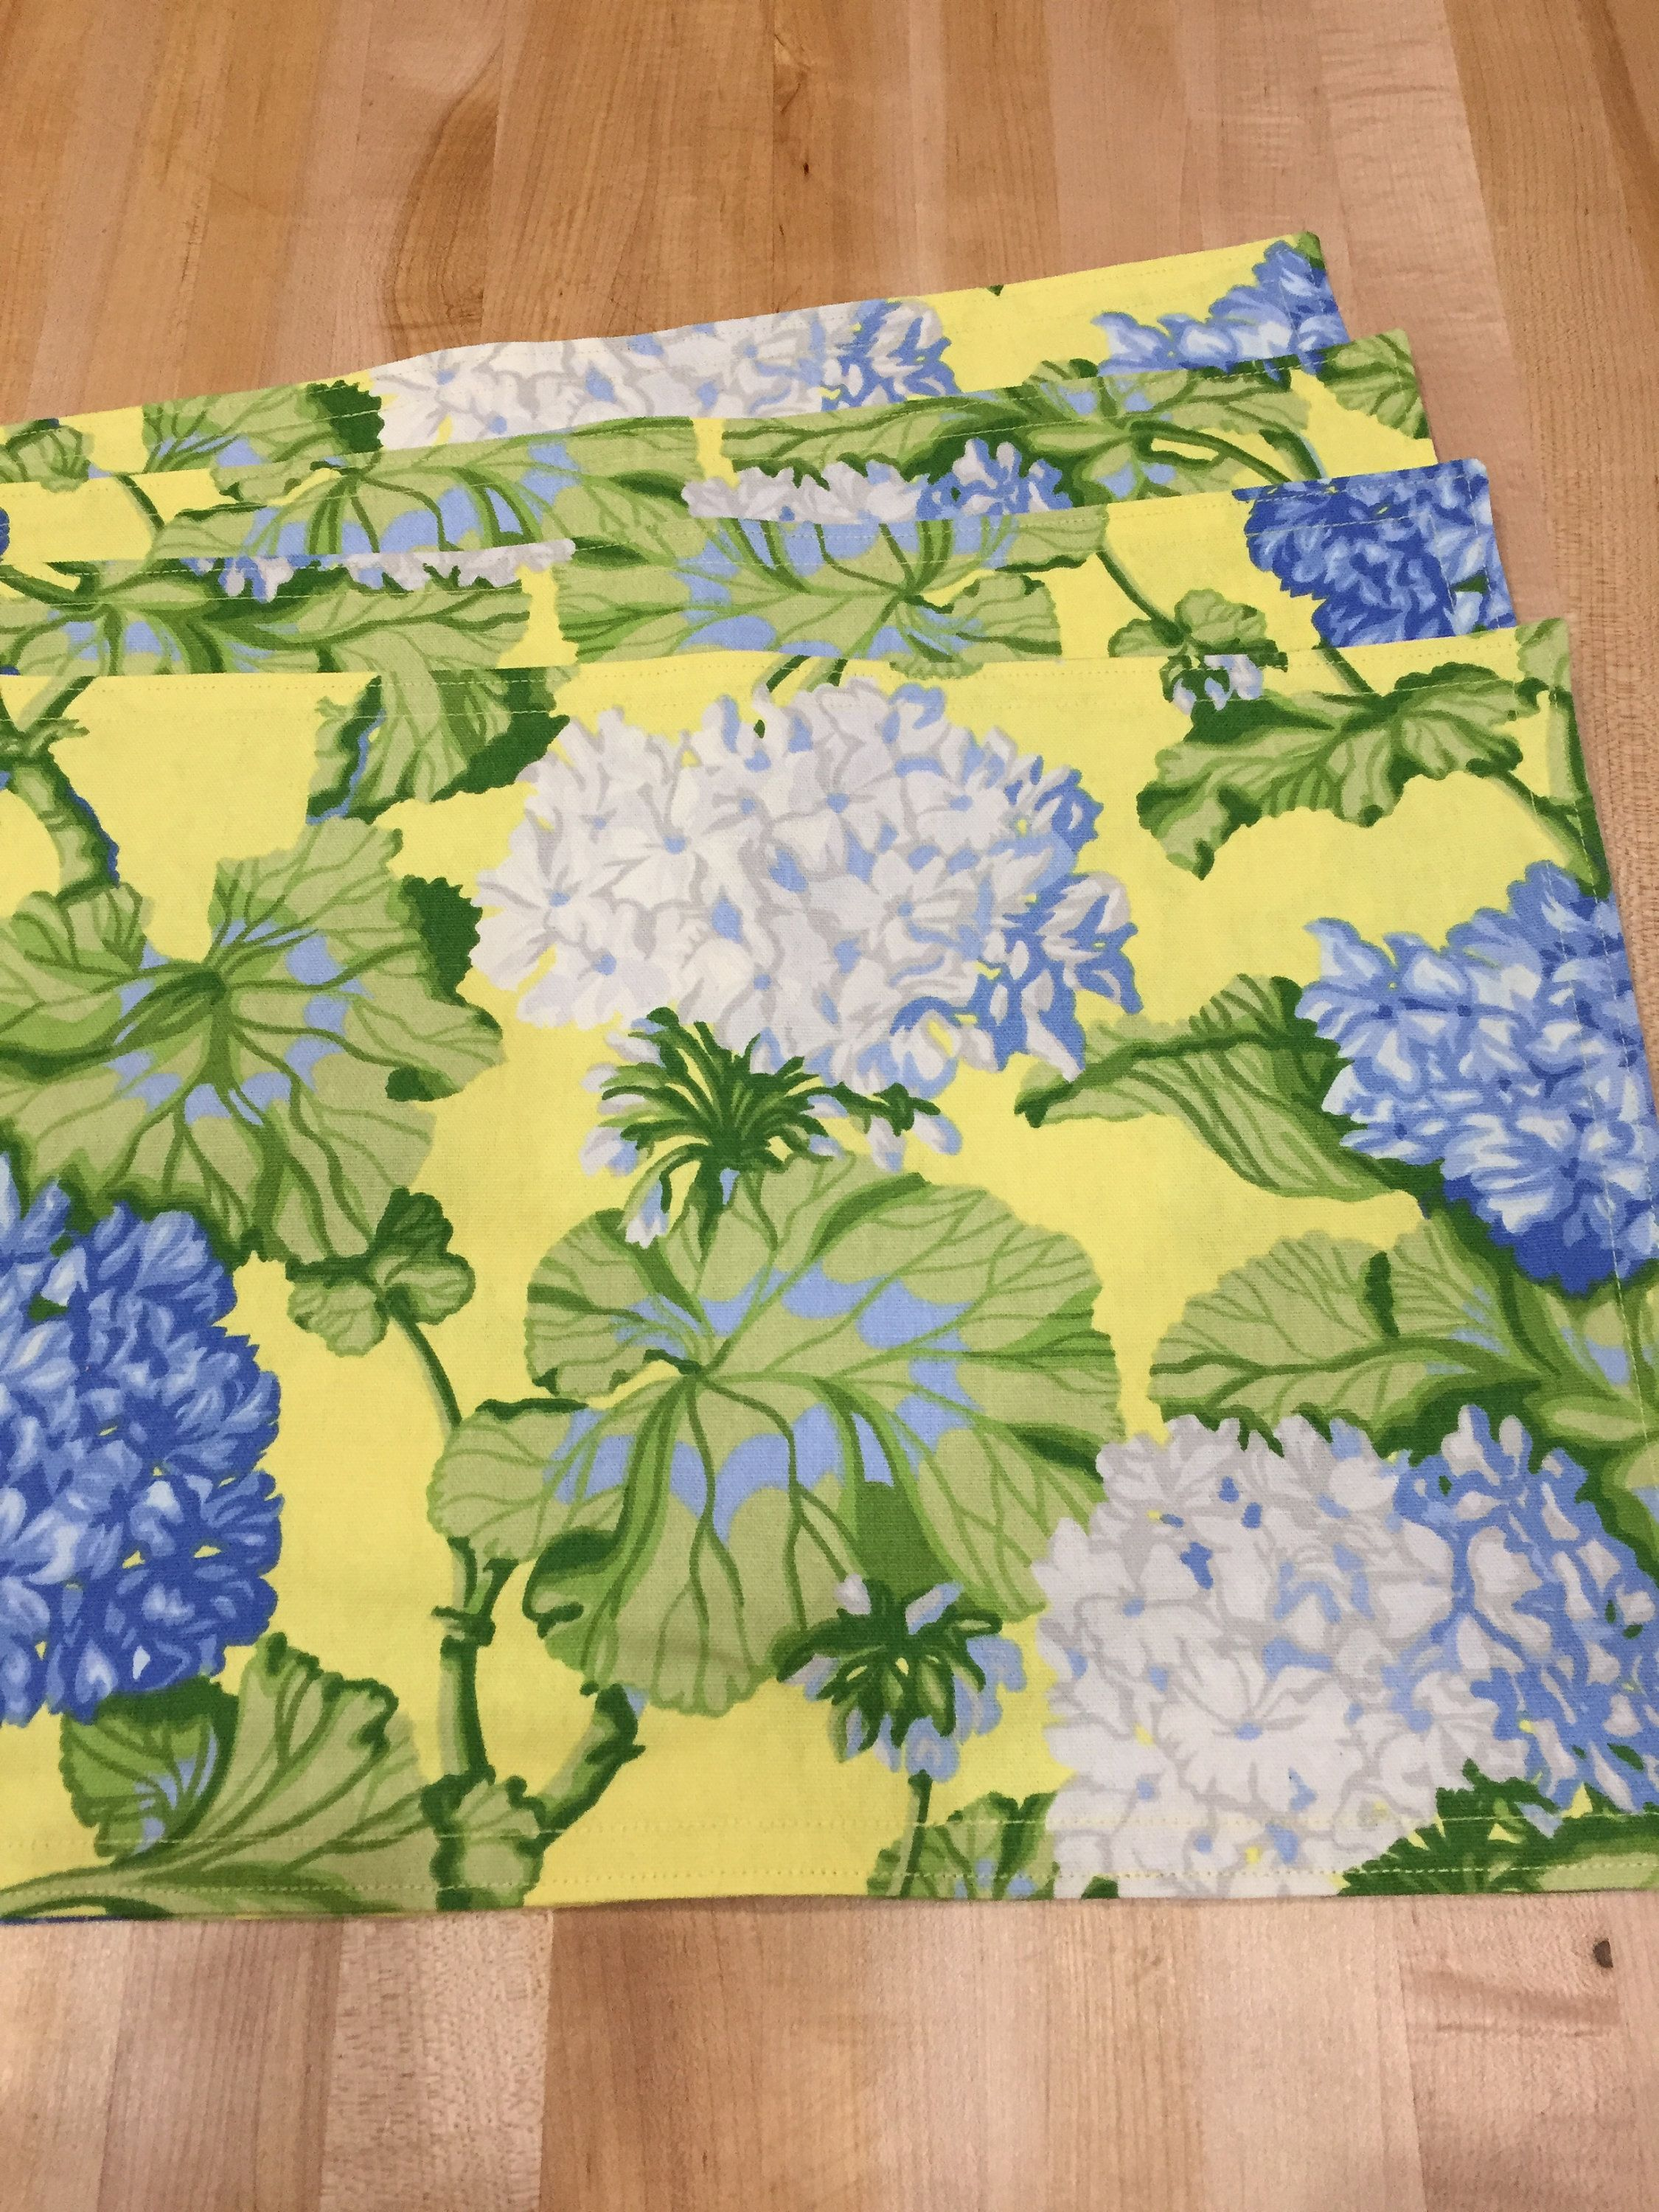 Cloth Placemats Blue And Yellow Floral Placemats Set Of 4 Reversible Placemats Cotton Handmade Spring Floral Placemats Placemats Yellow Floral